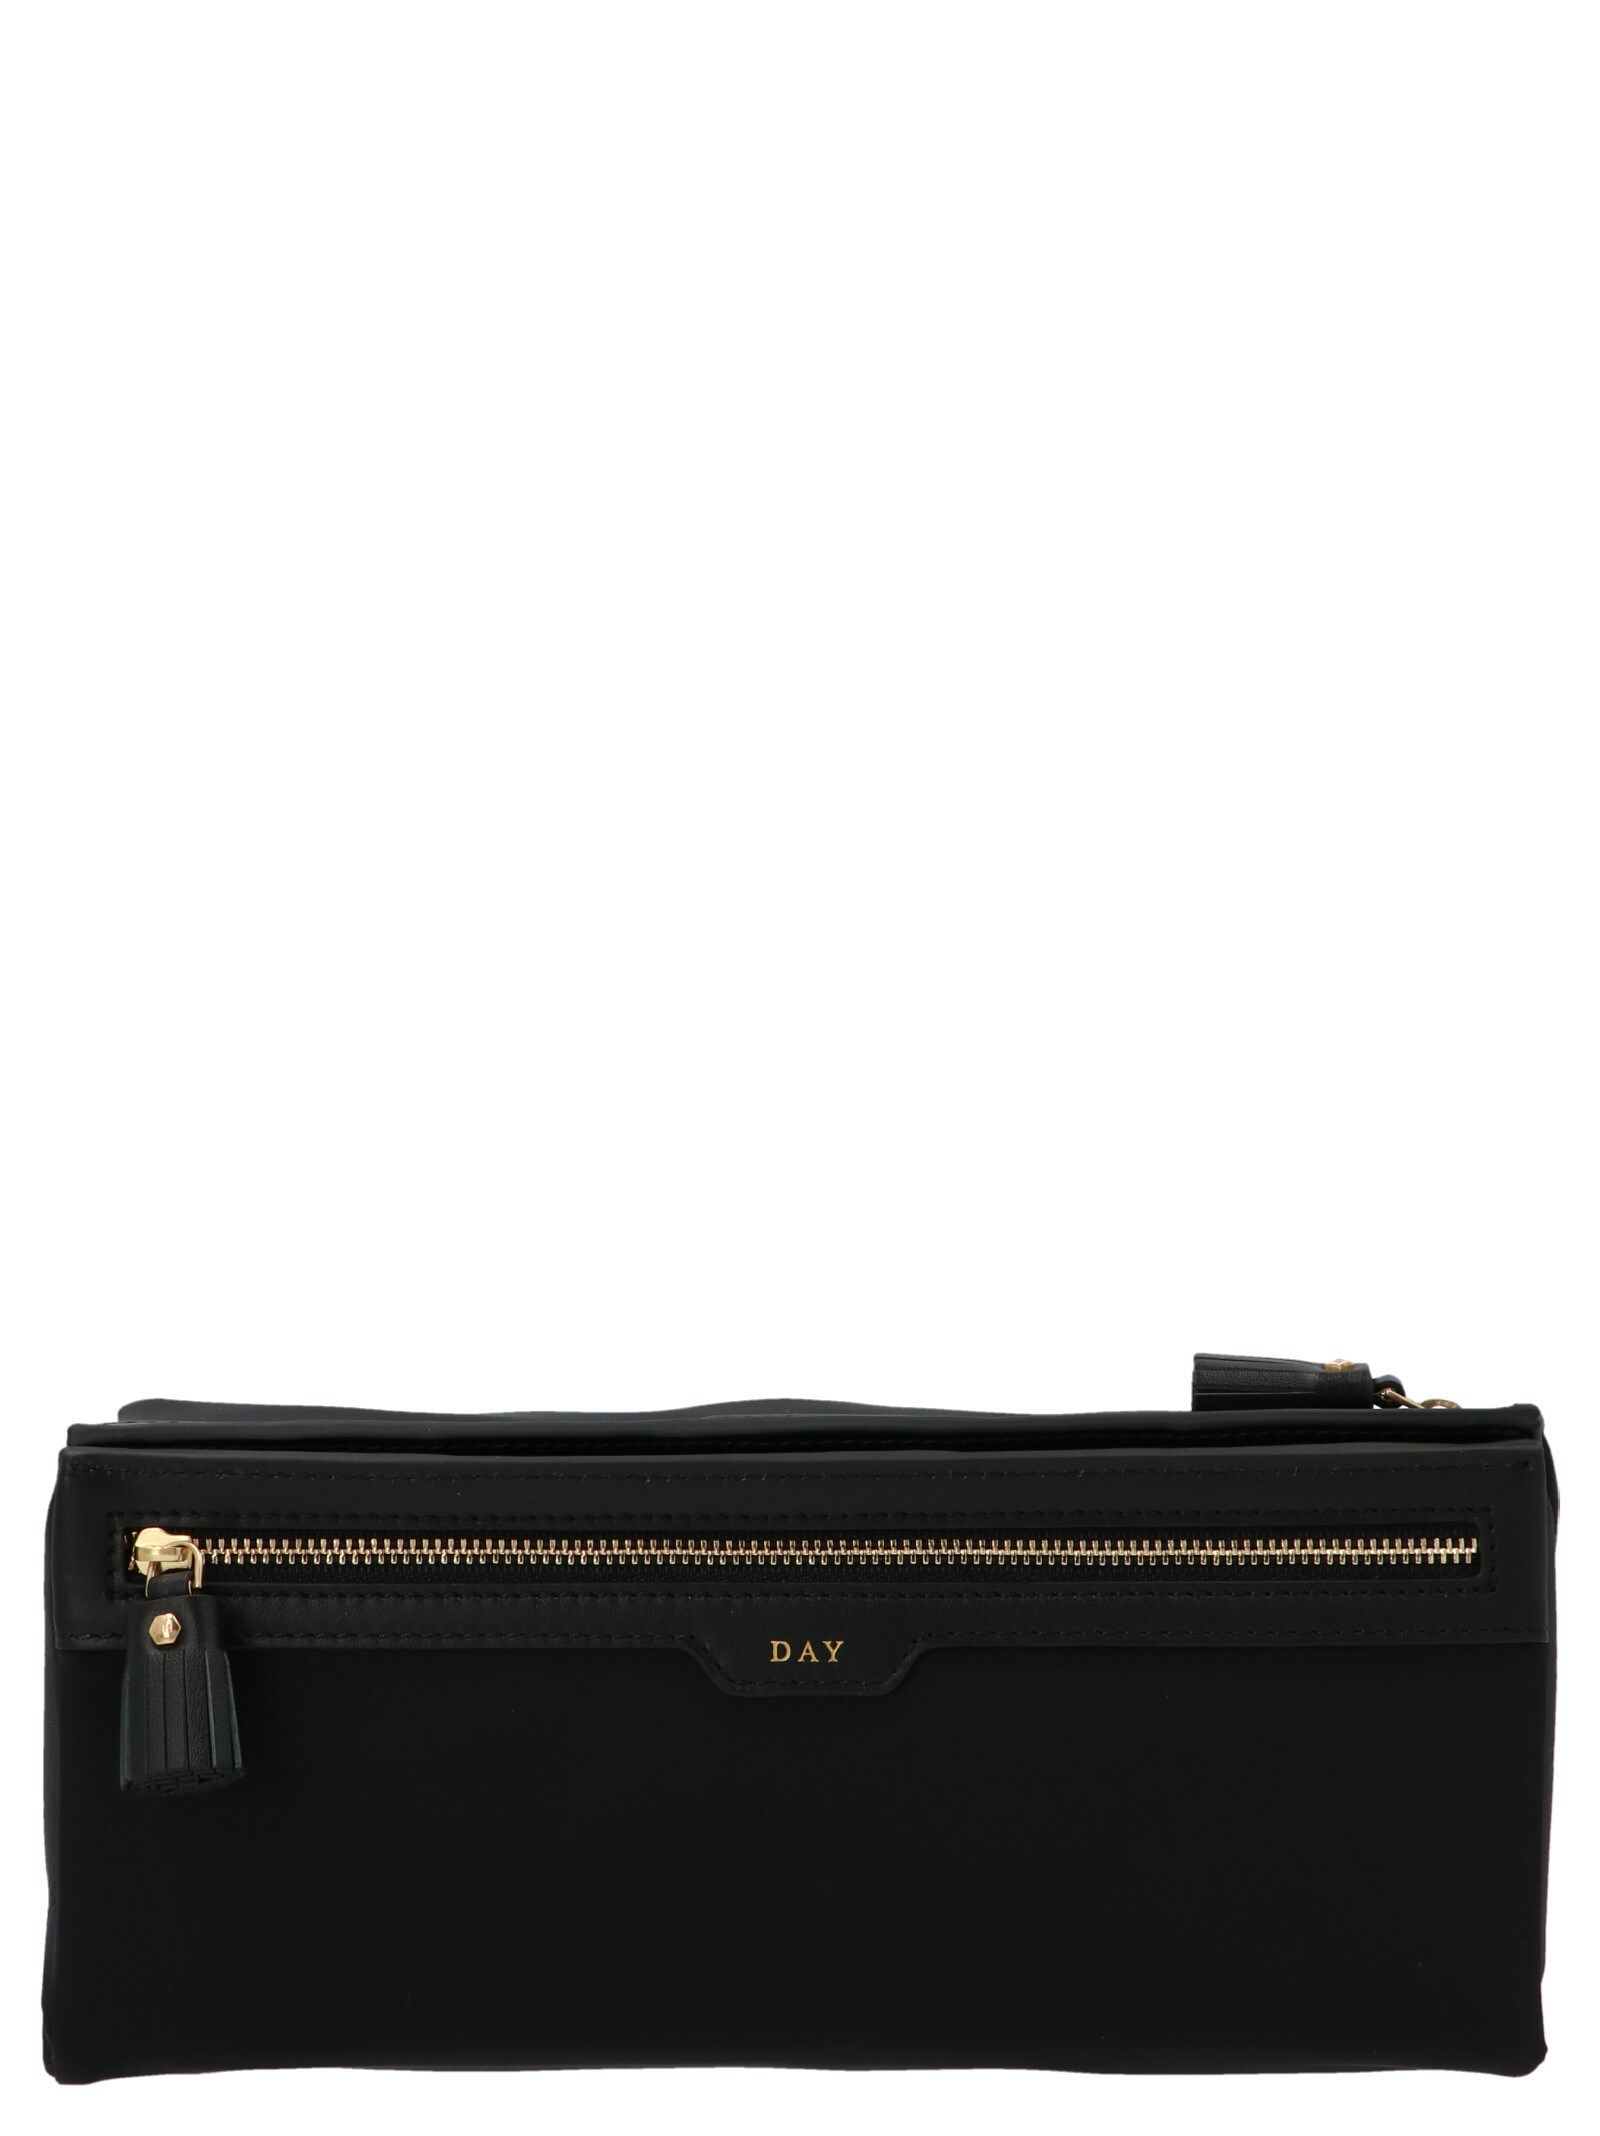 Anya Hindmarch ANYA HINDMARCH WOMEN'S 155458BLACK BLACK OTHER MATERIALS BEAUTY CASE